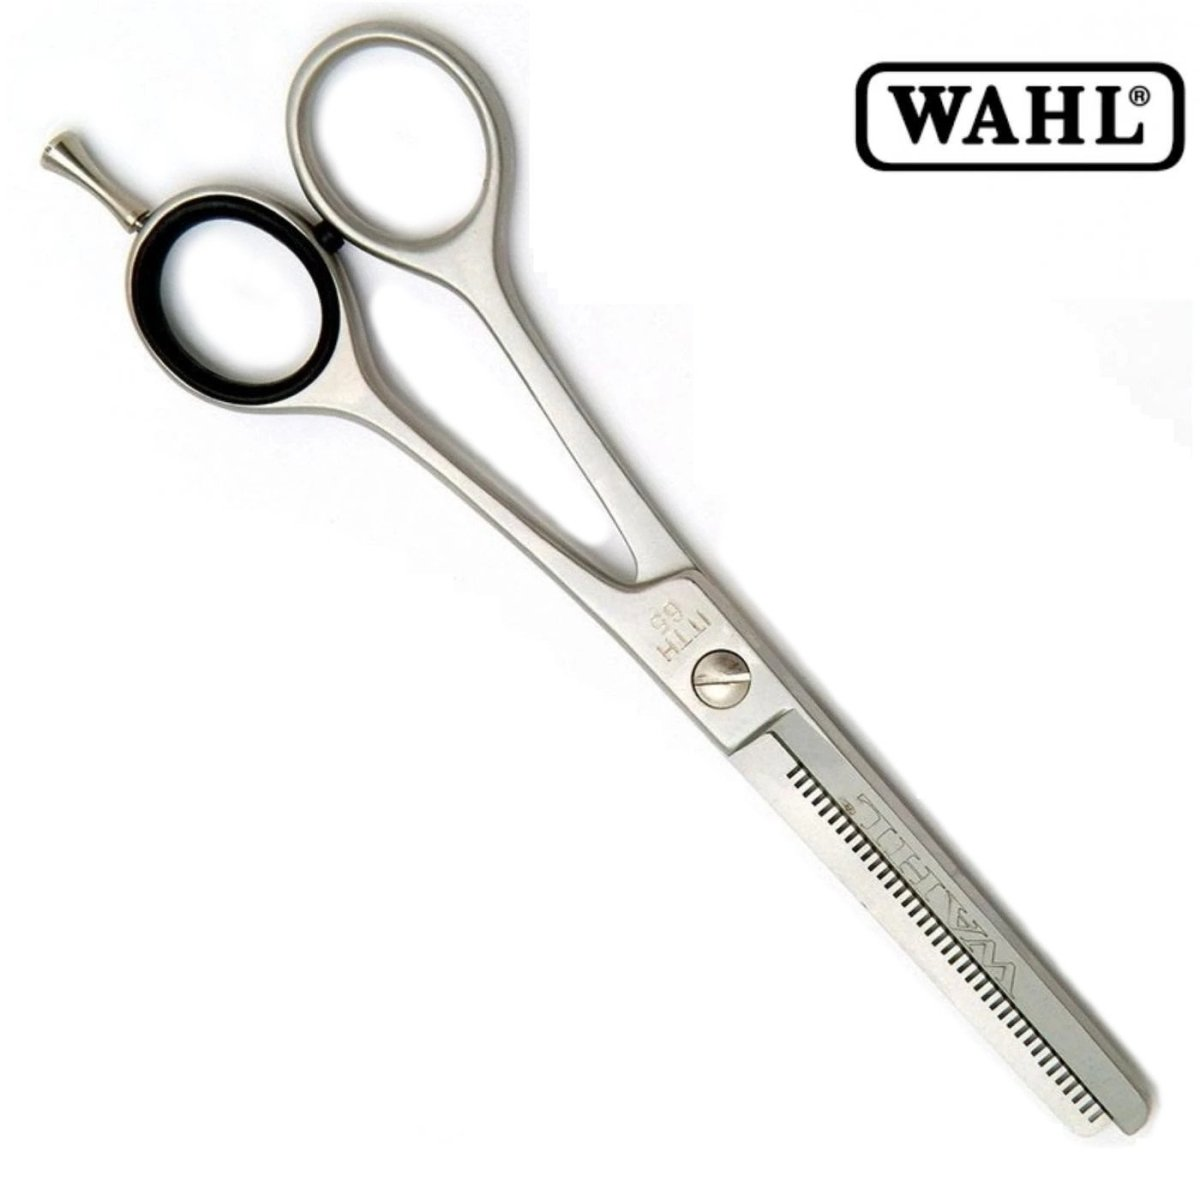 Wahl Professional Hairdresser Thinning Scissors - Japan Scissors